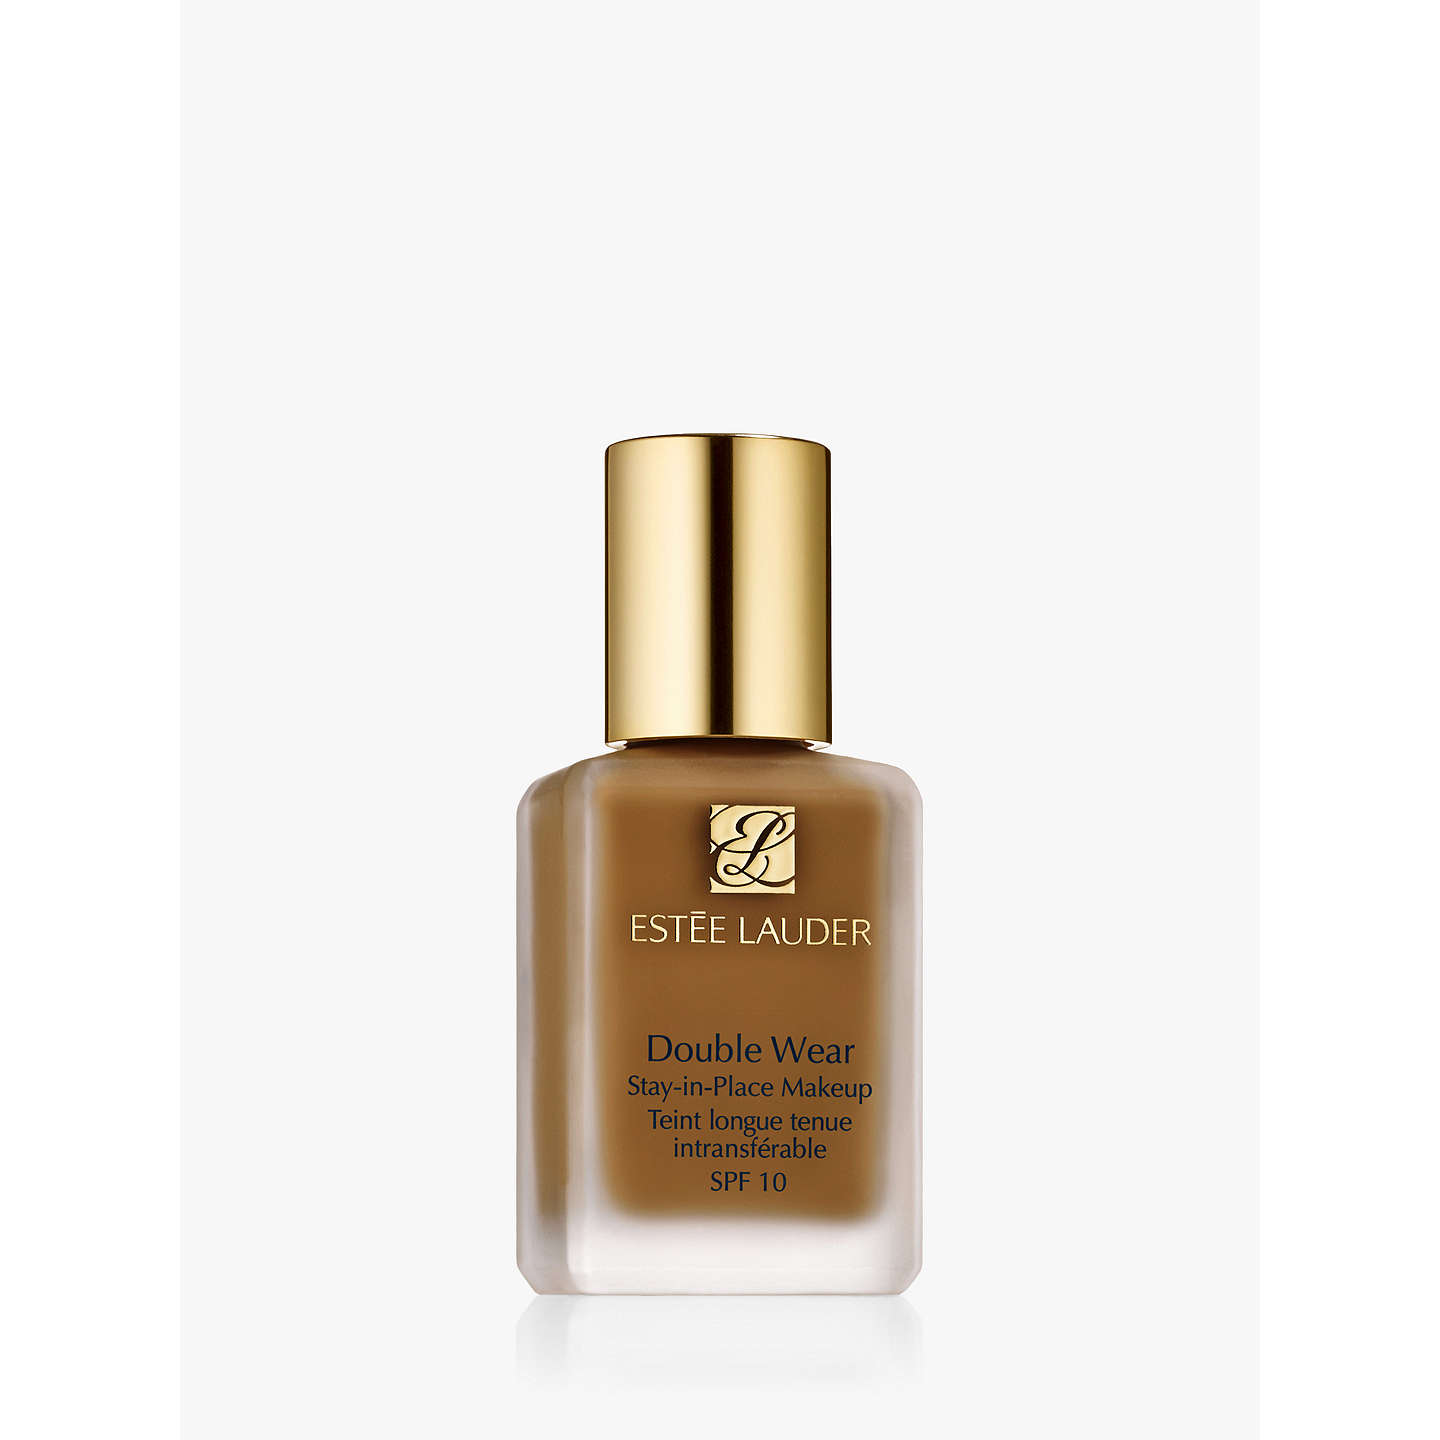 BuyEstée Lauder Double Wear Stay-In-Place Foundation Makeup SPF10, 6N2 Truffle Online at johnlewis.com